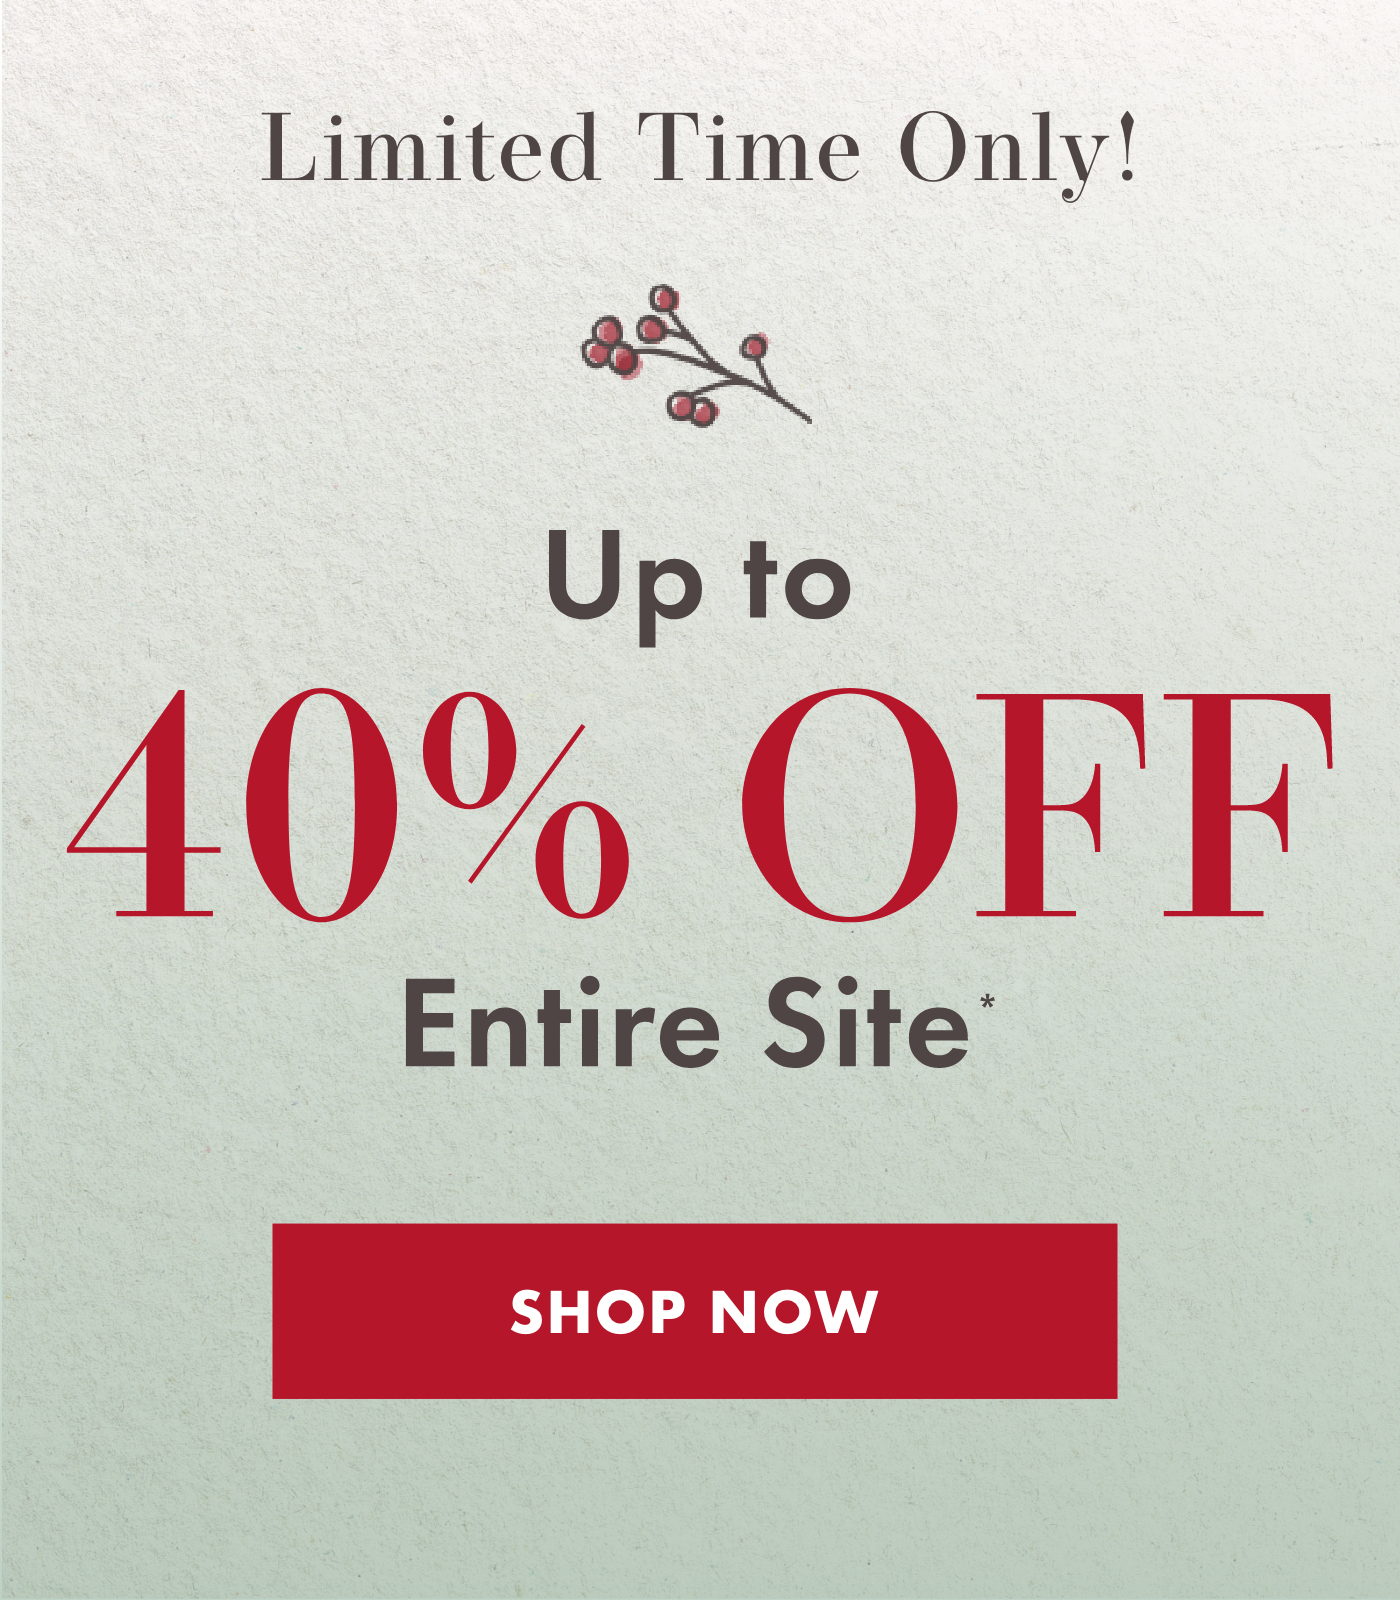 40% off entire site